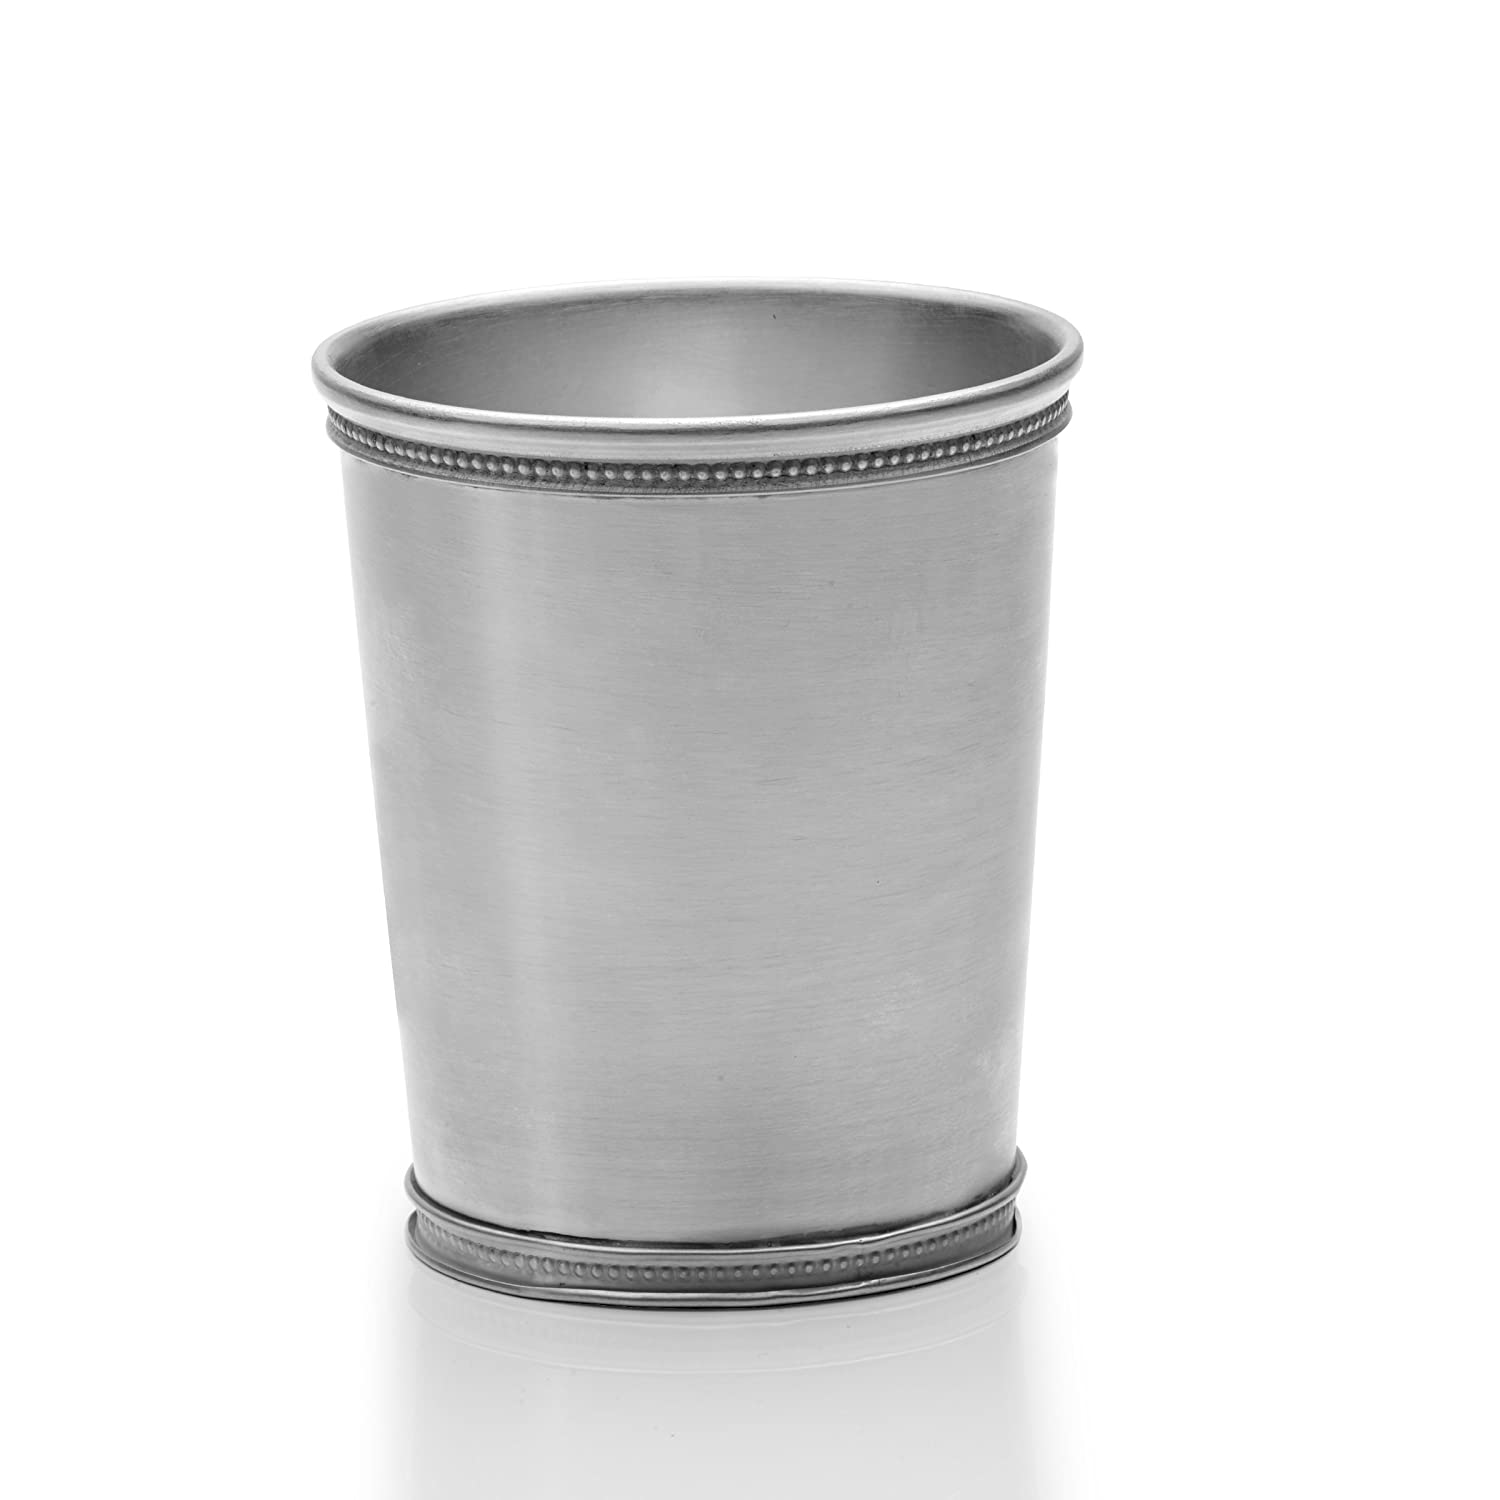 Mikasa Silver-Plated Mint Julep Cup, 12-Ounce 5187026